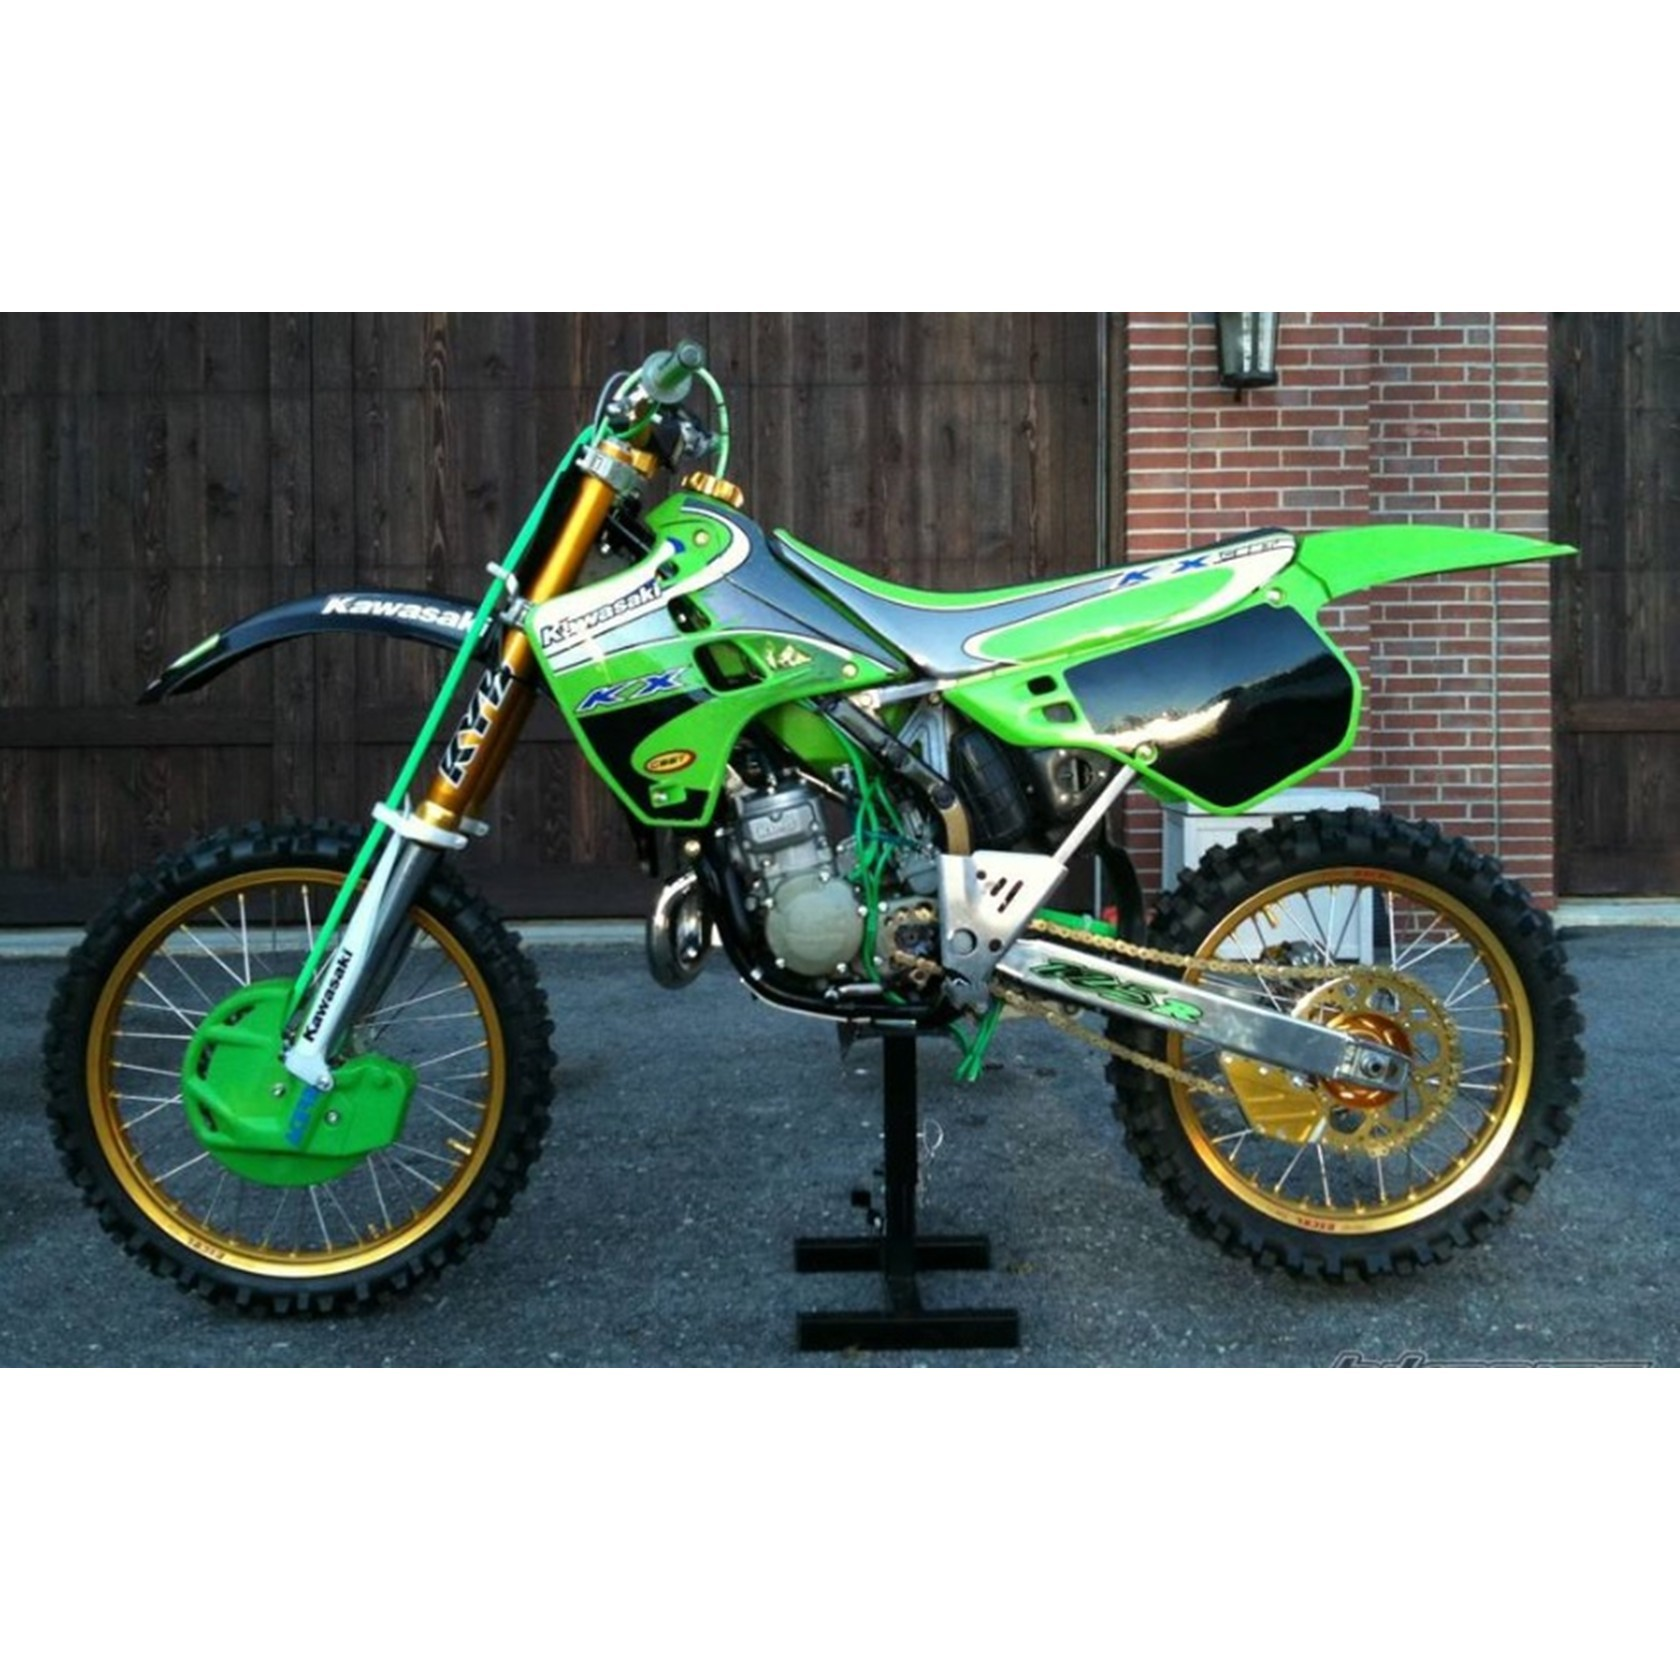 hight resolution of kx 125 engine diagram kawasaki kx125 1986 92 engine covers stainless steel allen bolt kit of